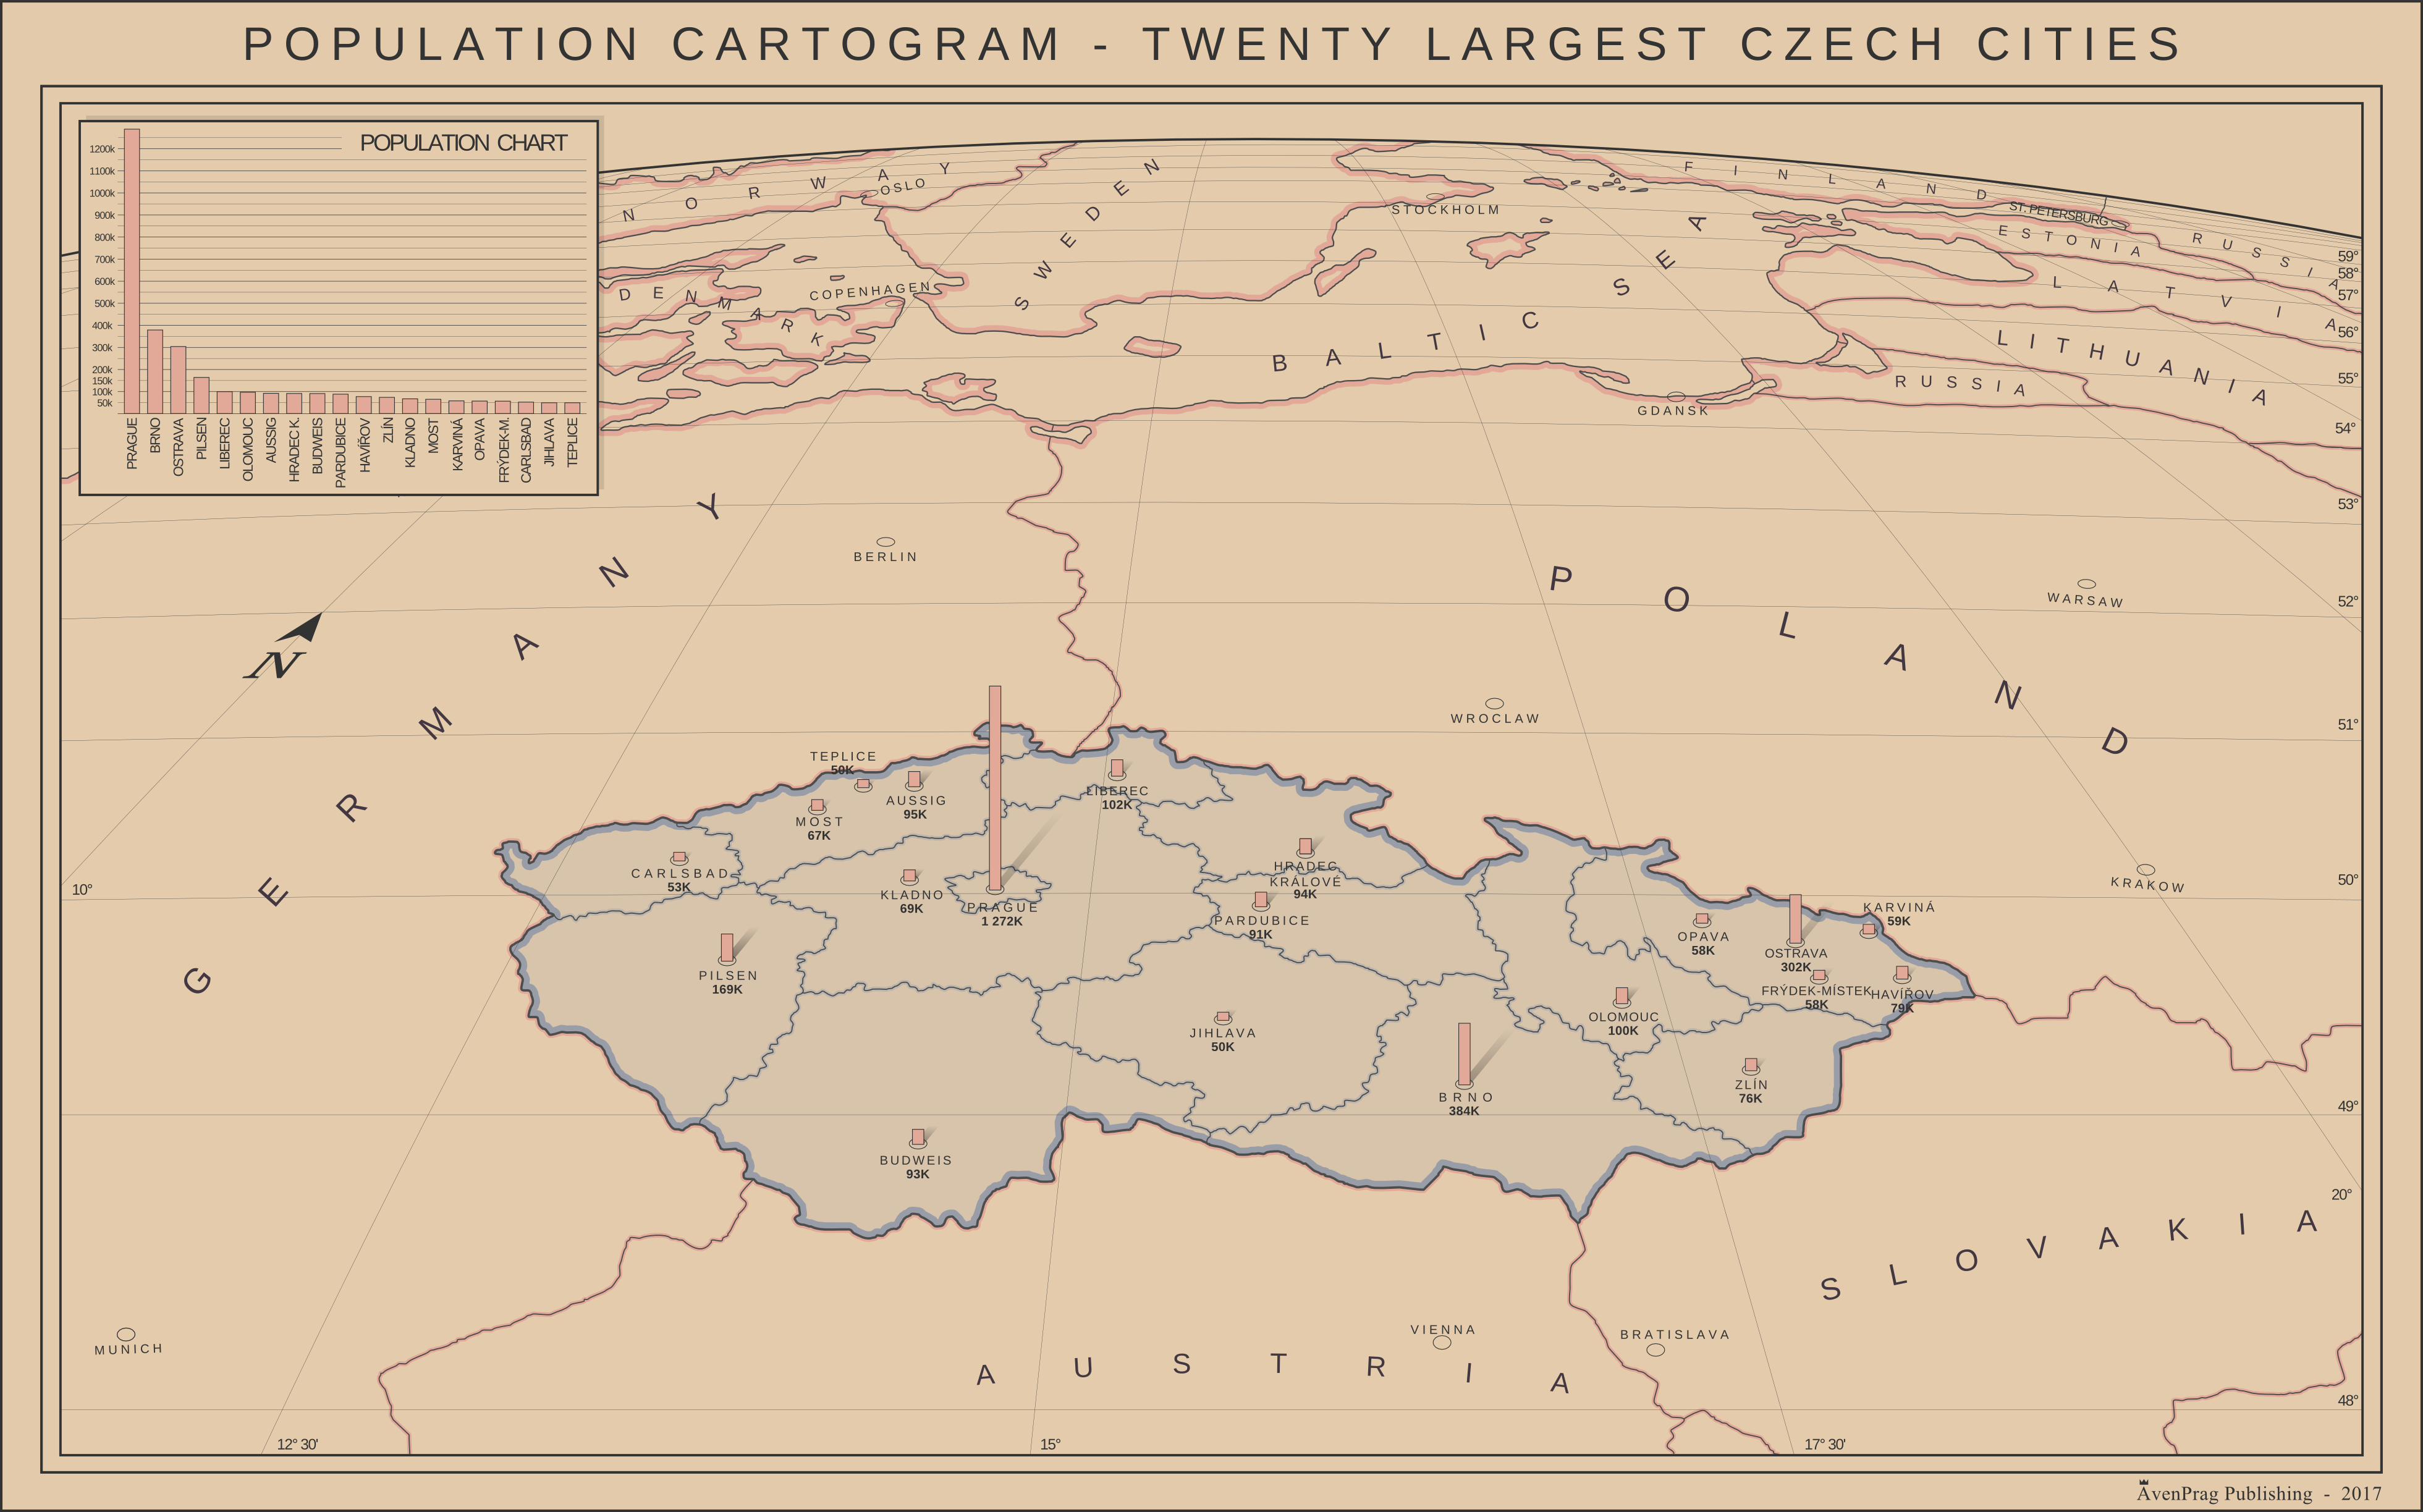 Cartogram - 20 largest Czech cities by SoaringAven